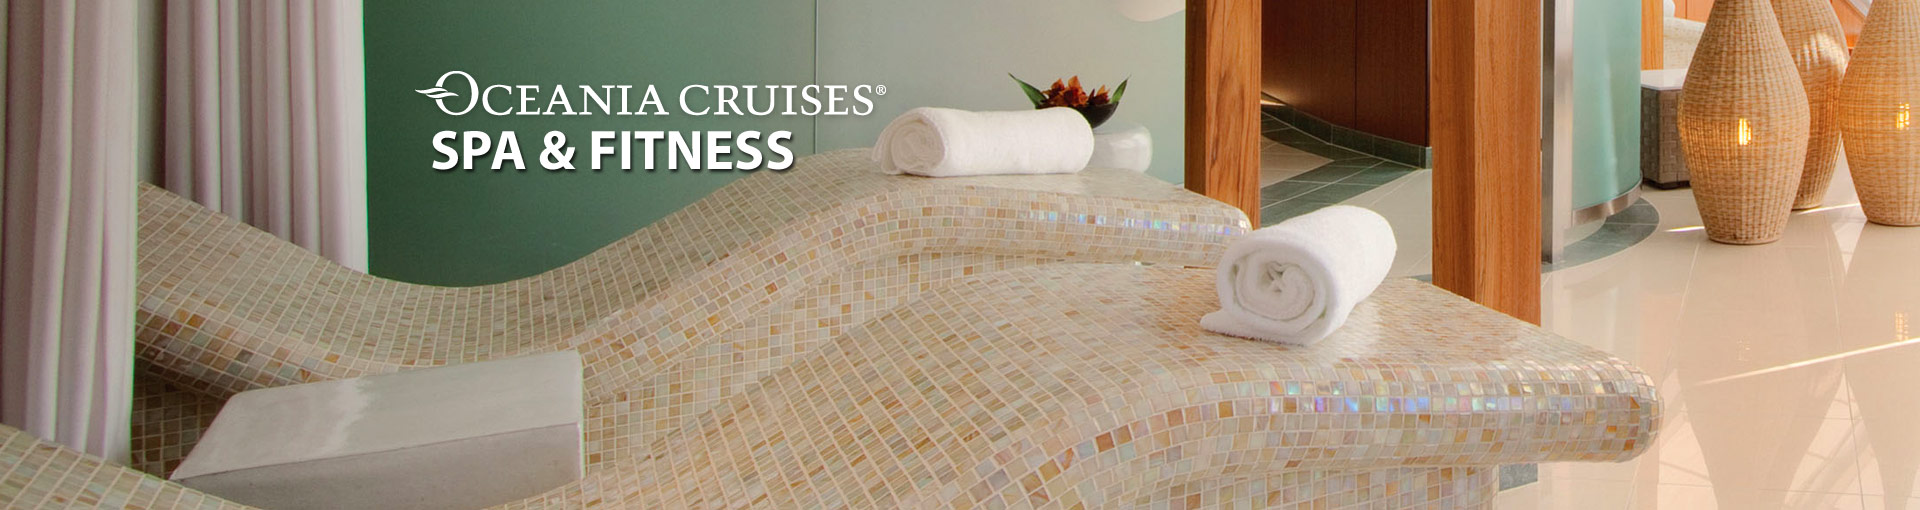 Oceania Cruises Spa & Fitness